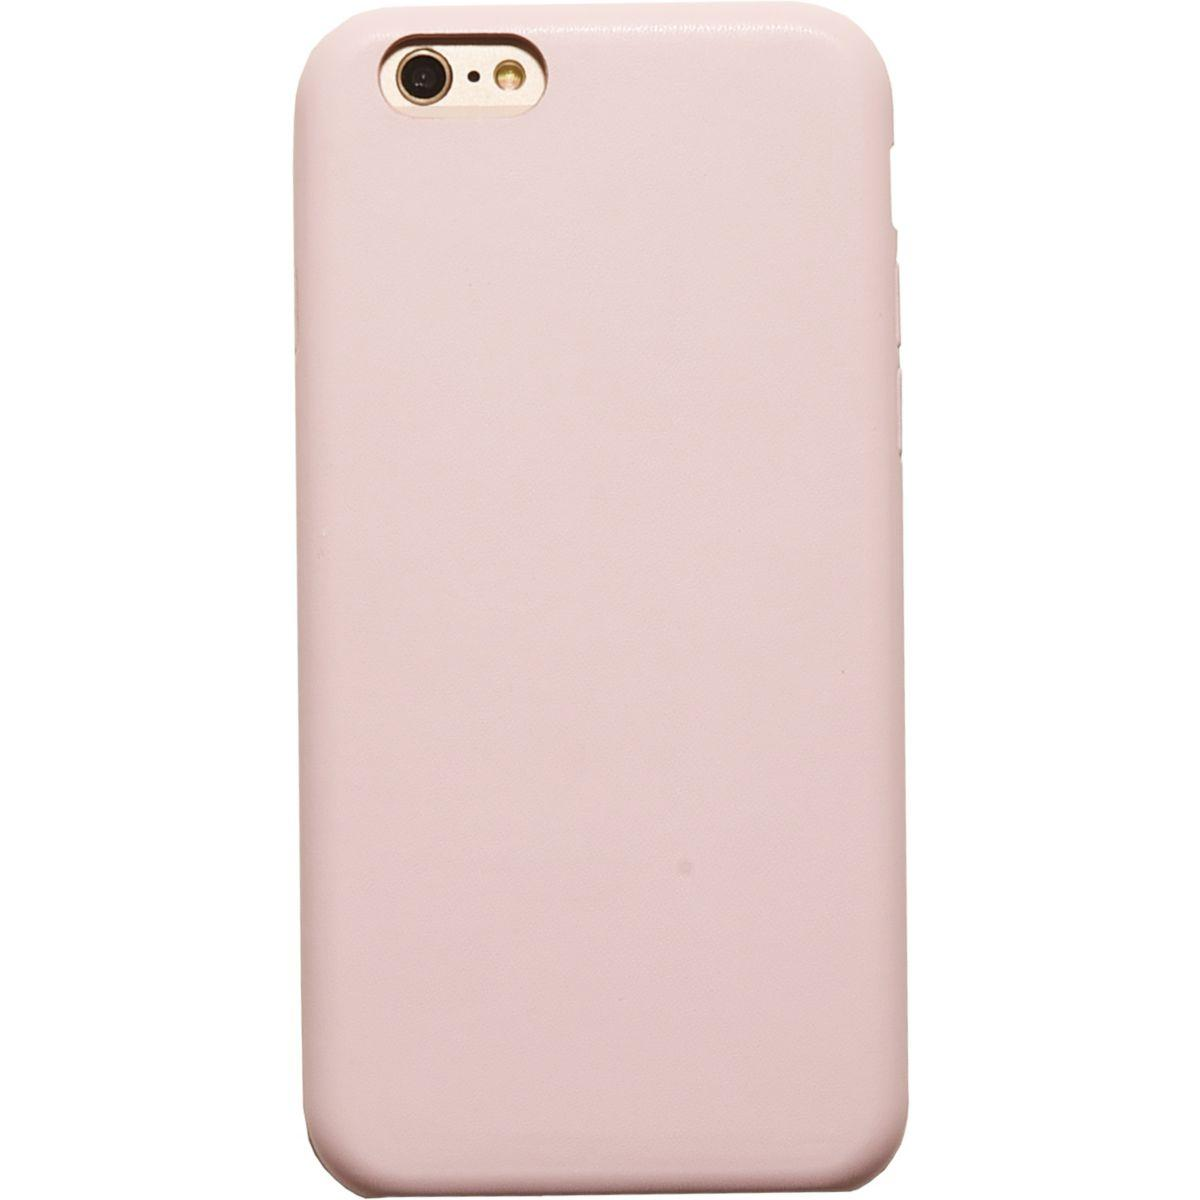 Coque adeqwat iphone 6 nude (photo)